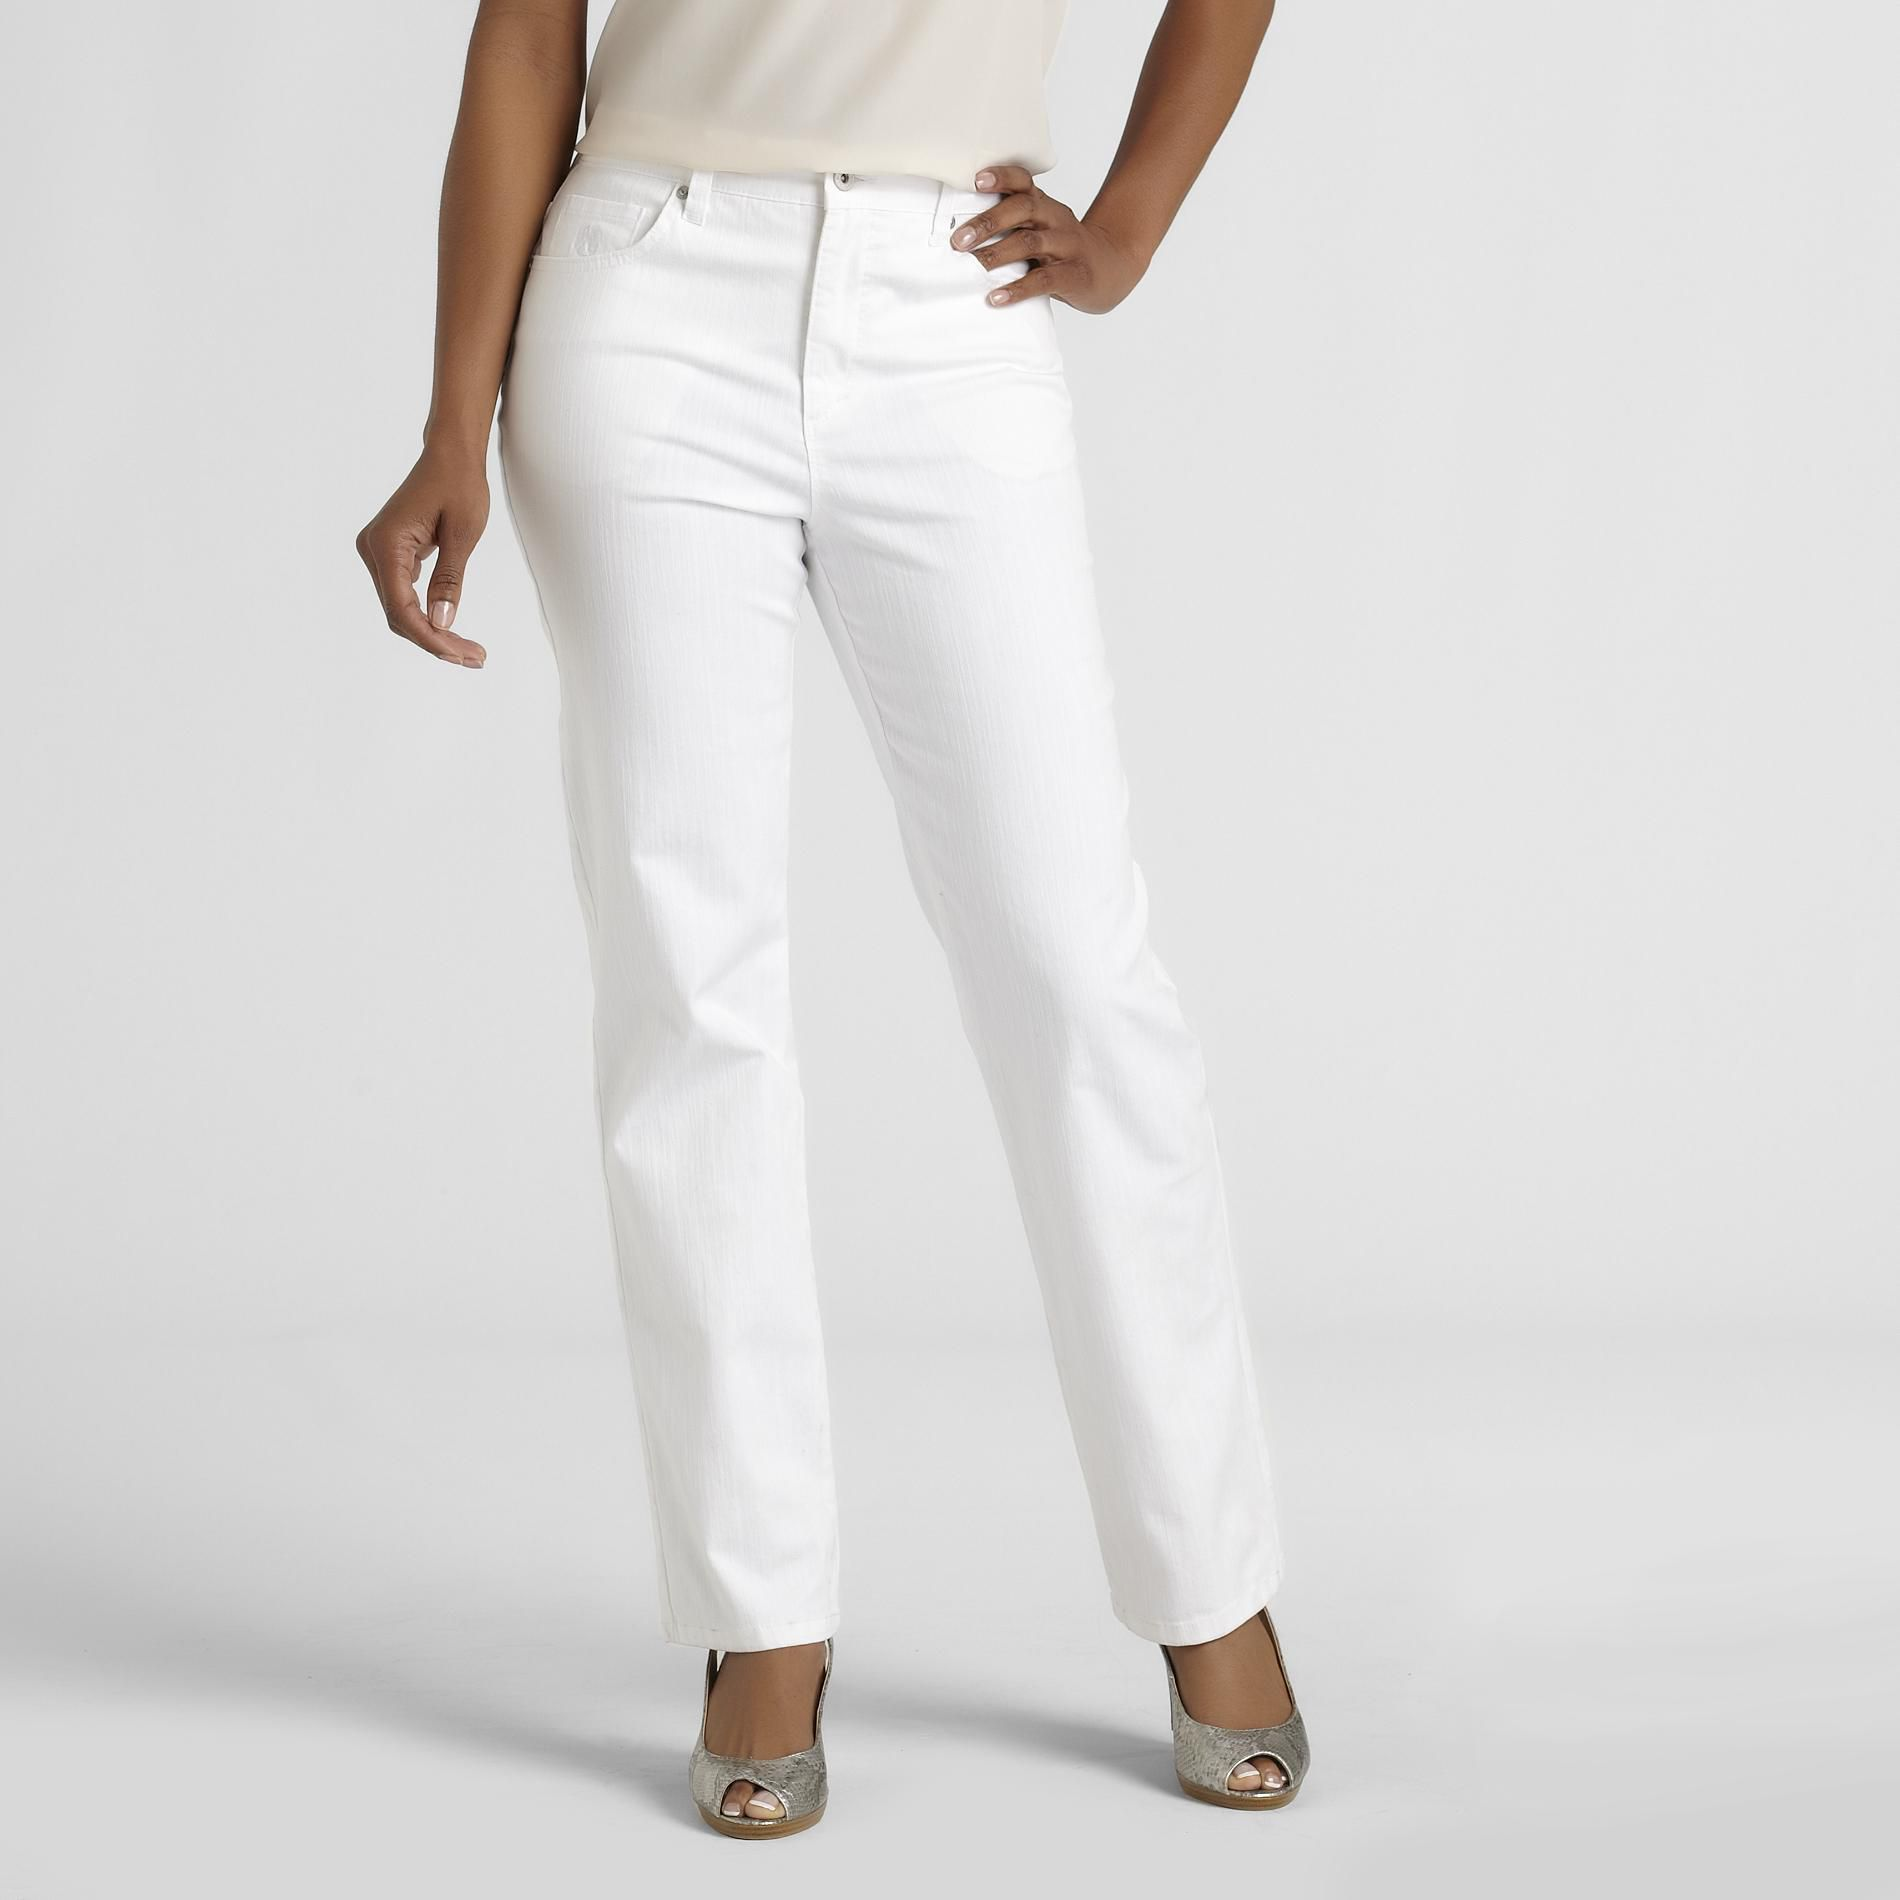 Gloria Vanderbilt Women's Amanda Fit Color Jeans at Sears.com